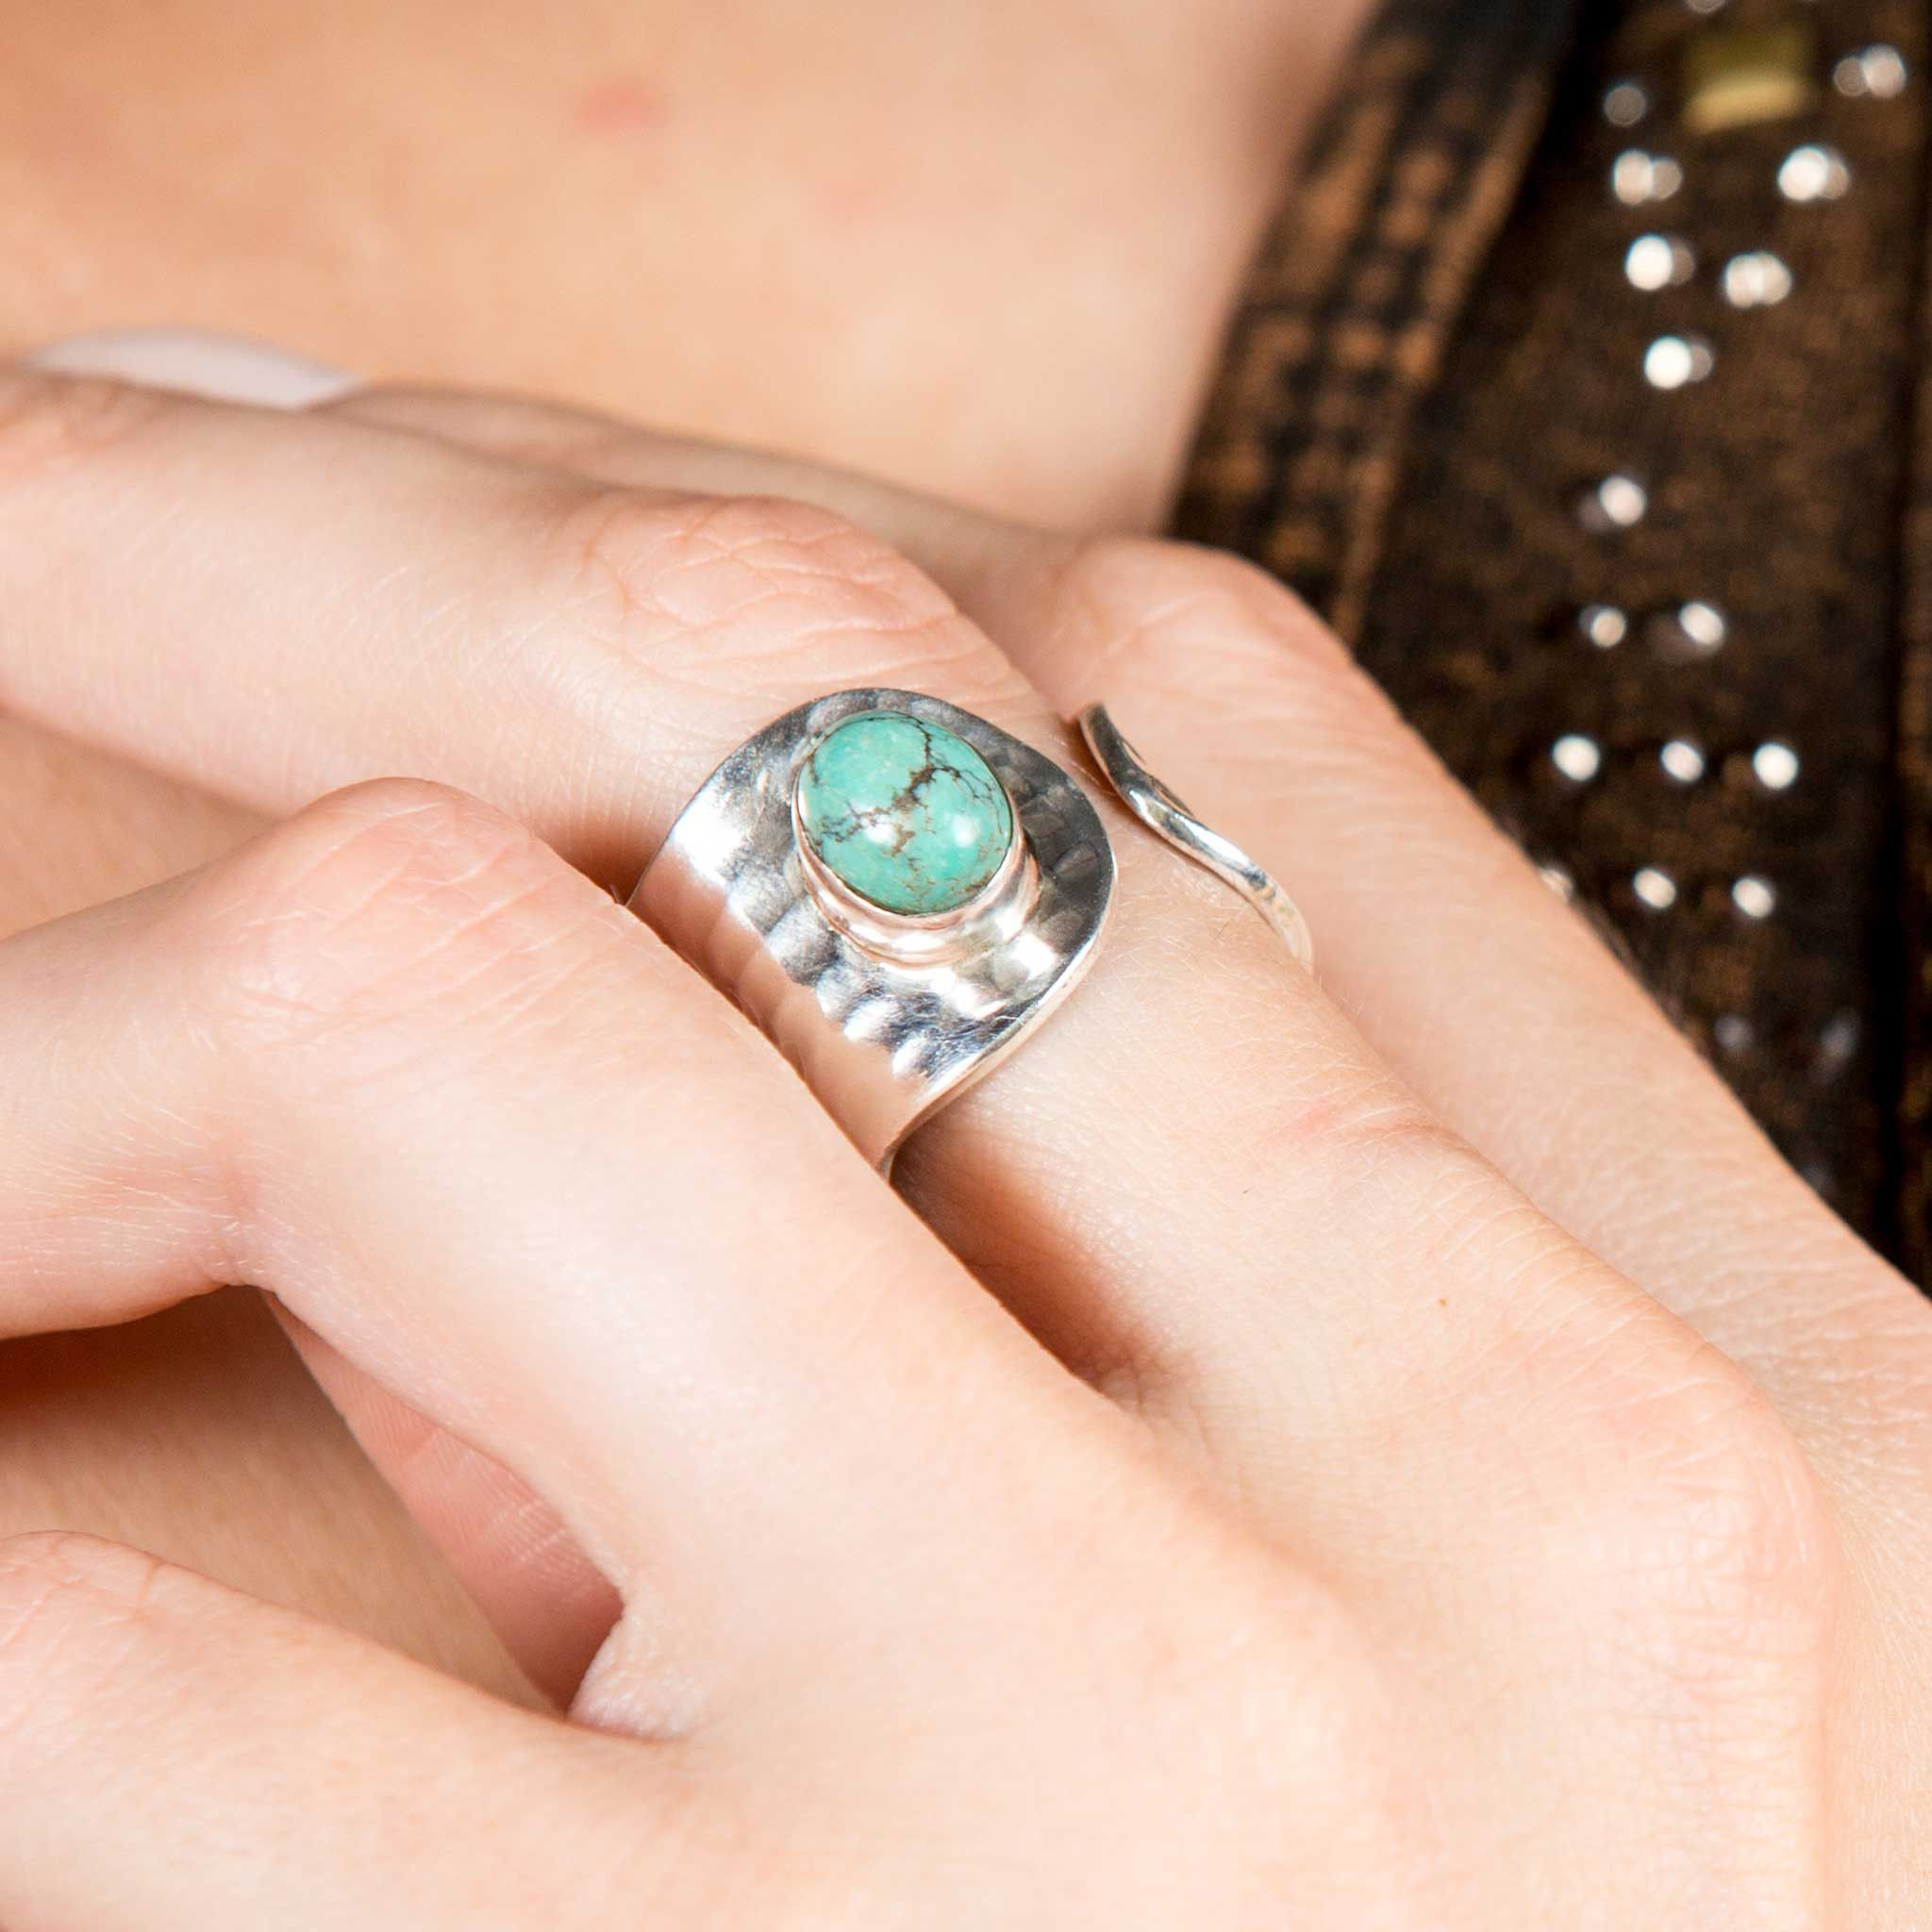 Turquoise and Sterling Silver Adjustable Ring